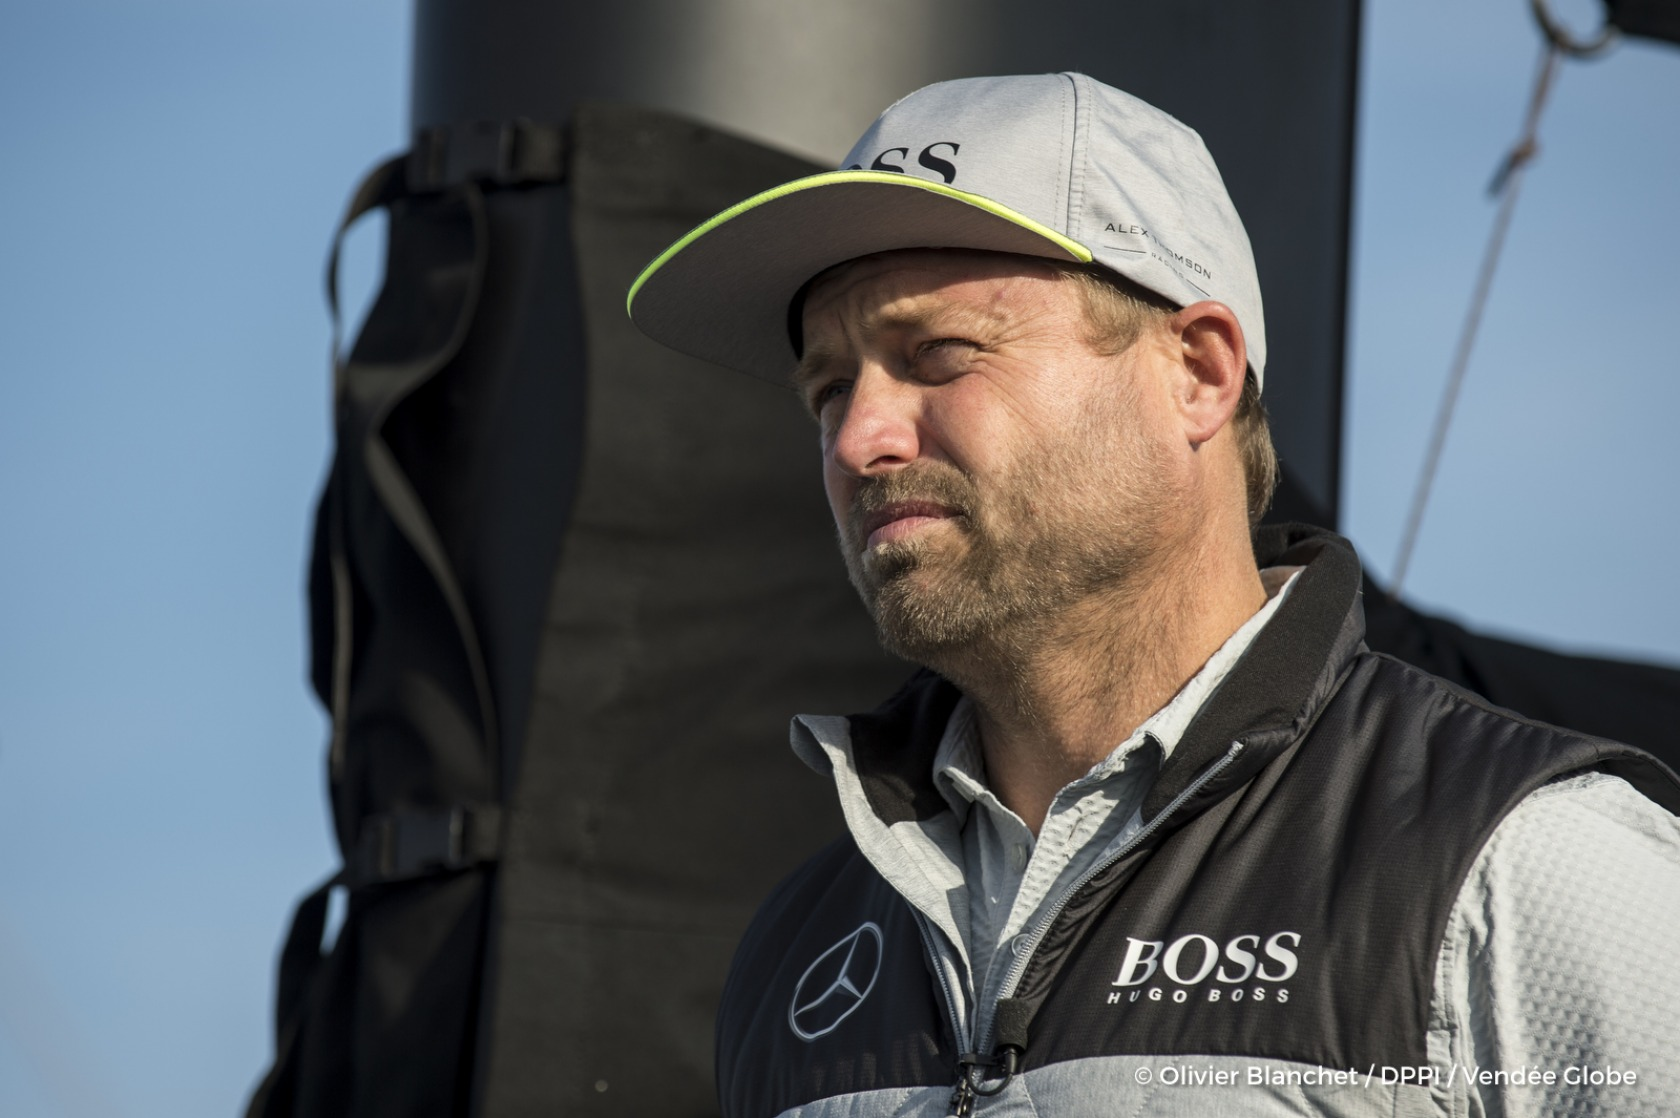 Illustration media with Alex Thomson (GBR), skipper Hugo Boss, on pontoons of the Vendee Globe, in Les Sables d'Olonne, France, on November 2nd, 2016 - Photo Olivier Blanchet / DPPI / Vendée Globe Illustration media avec Alex Thomson (GBR), skipper Hugo